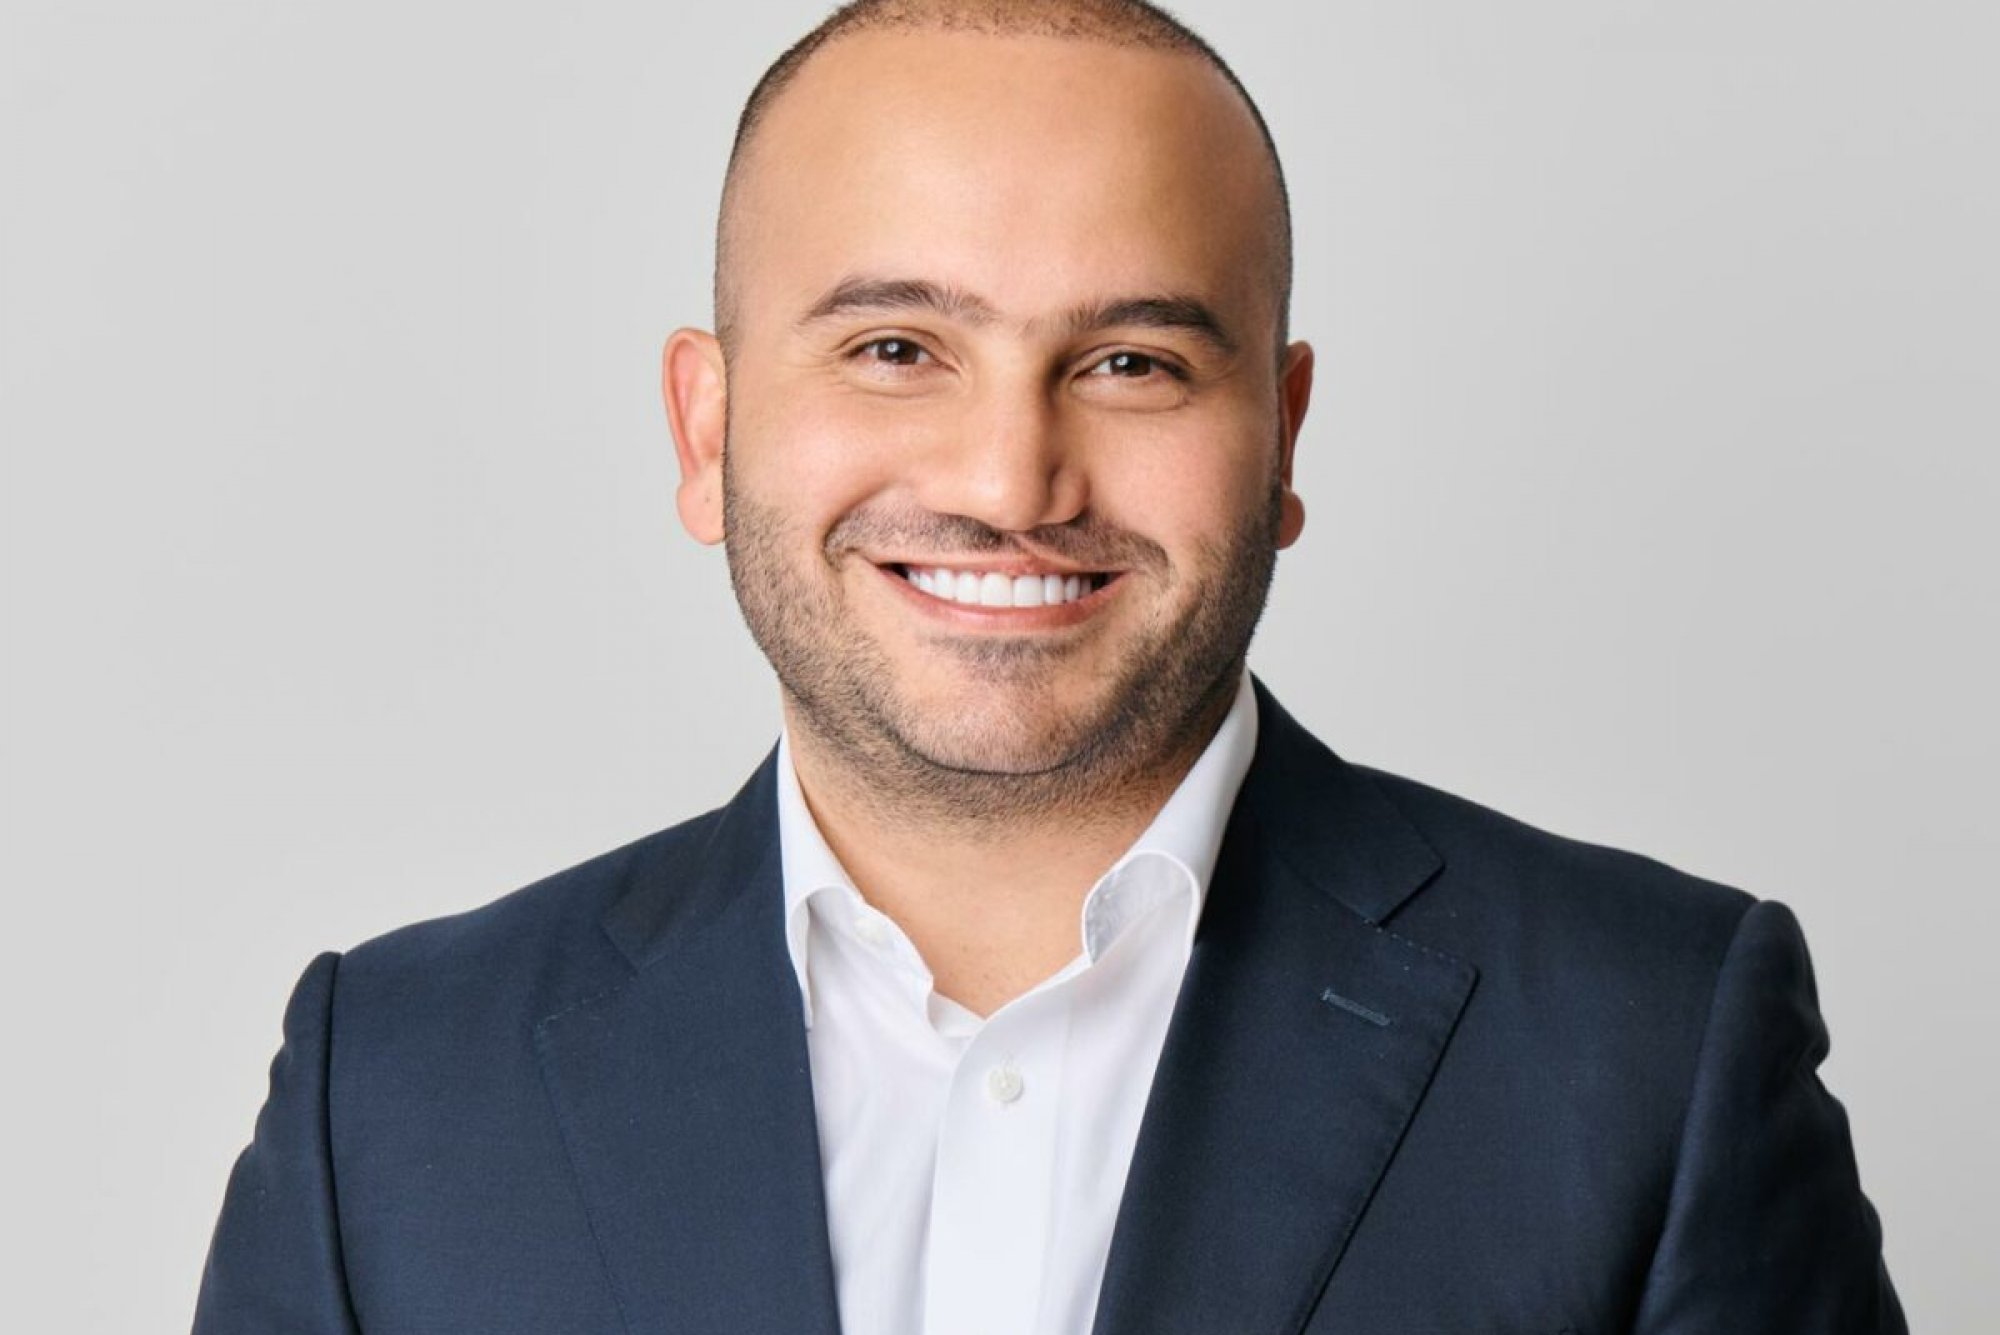 Caterer ME - Why 7 Management CEO Rabih Fakhreddine is excited about The Theater